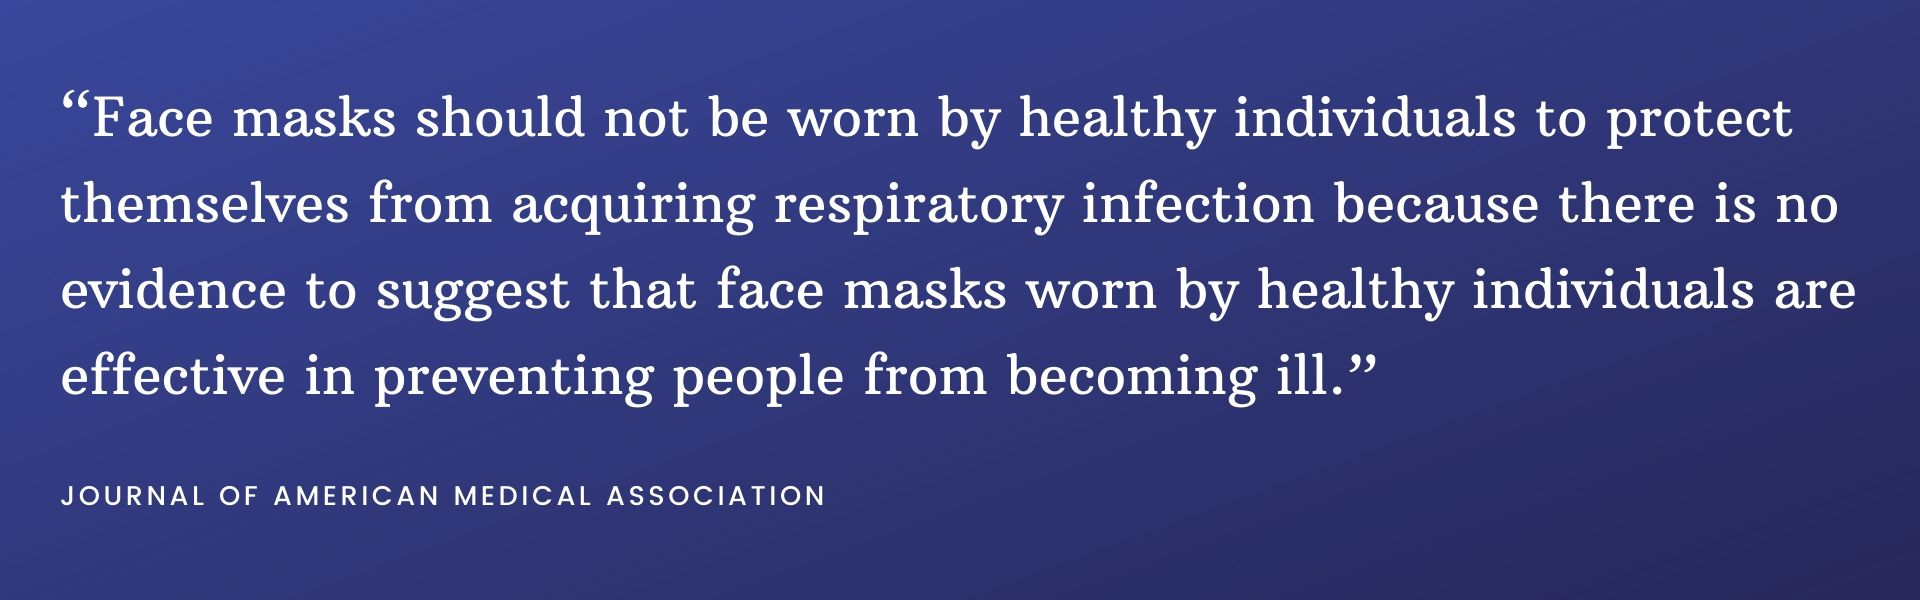 Face masks should not be worn by healthy individuals